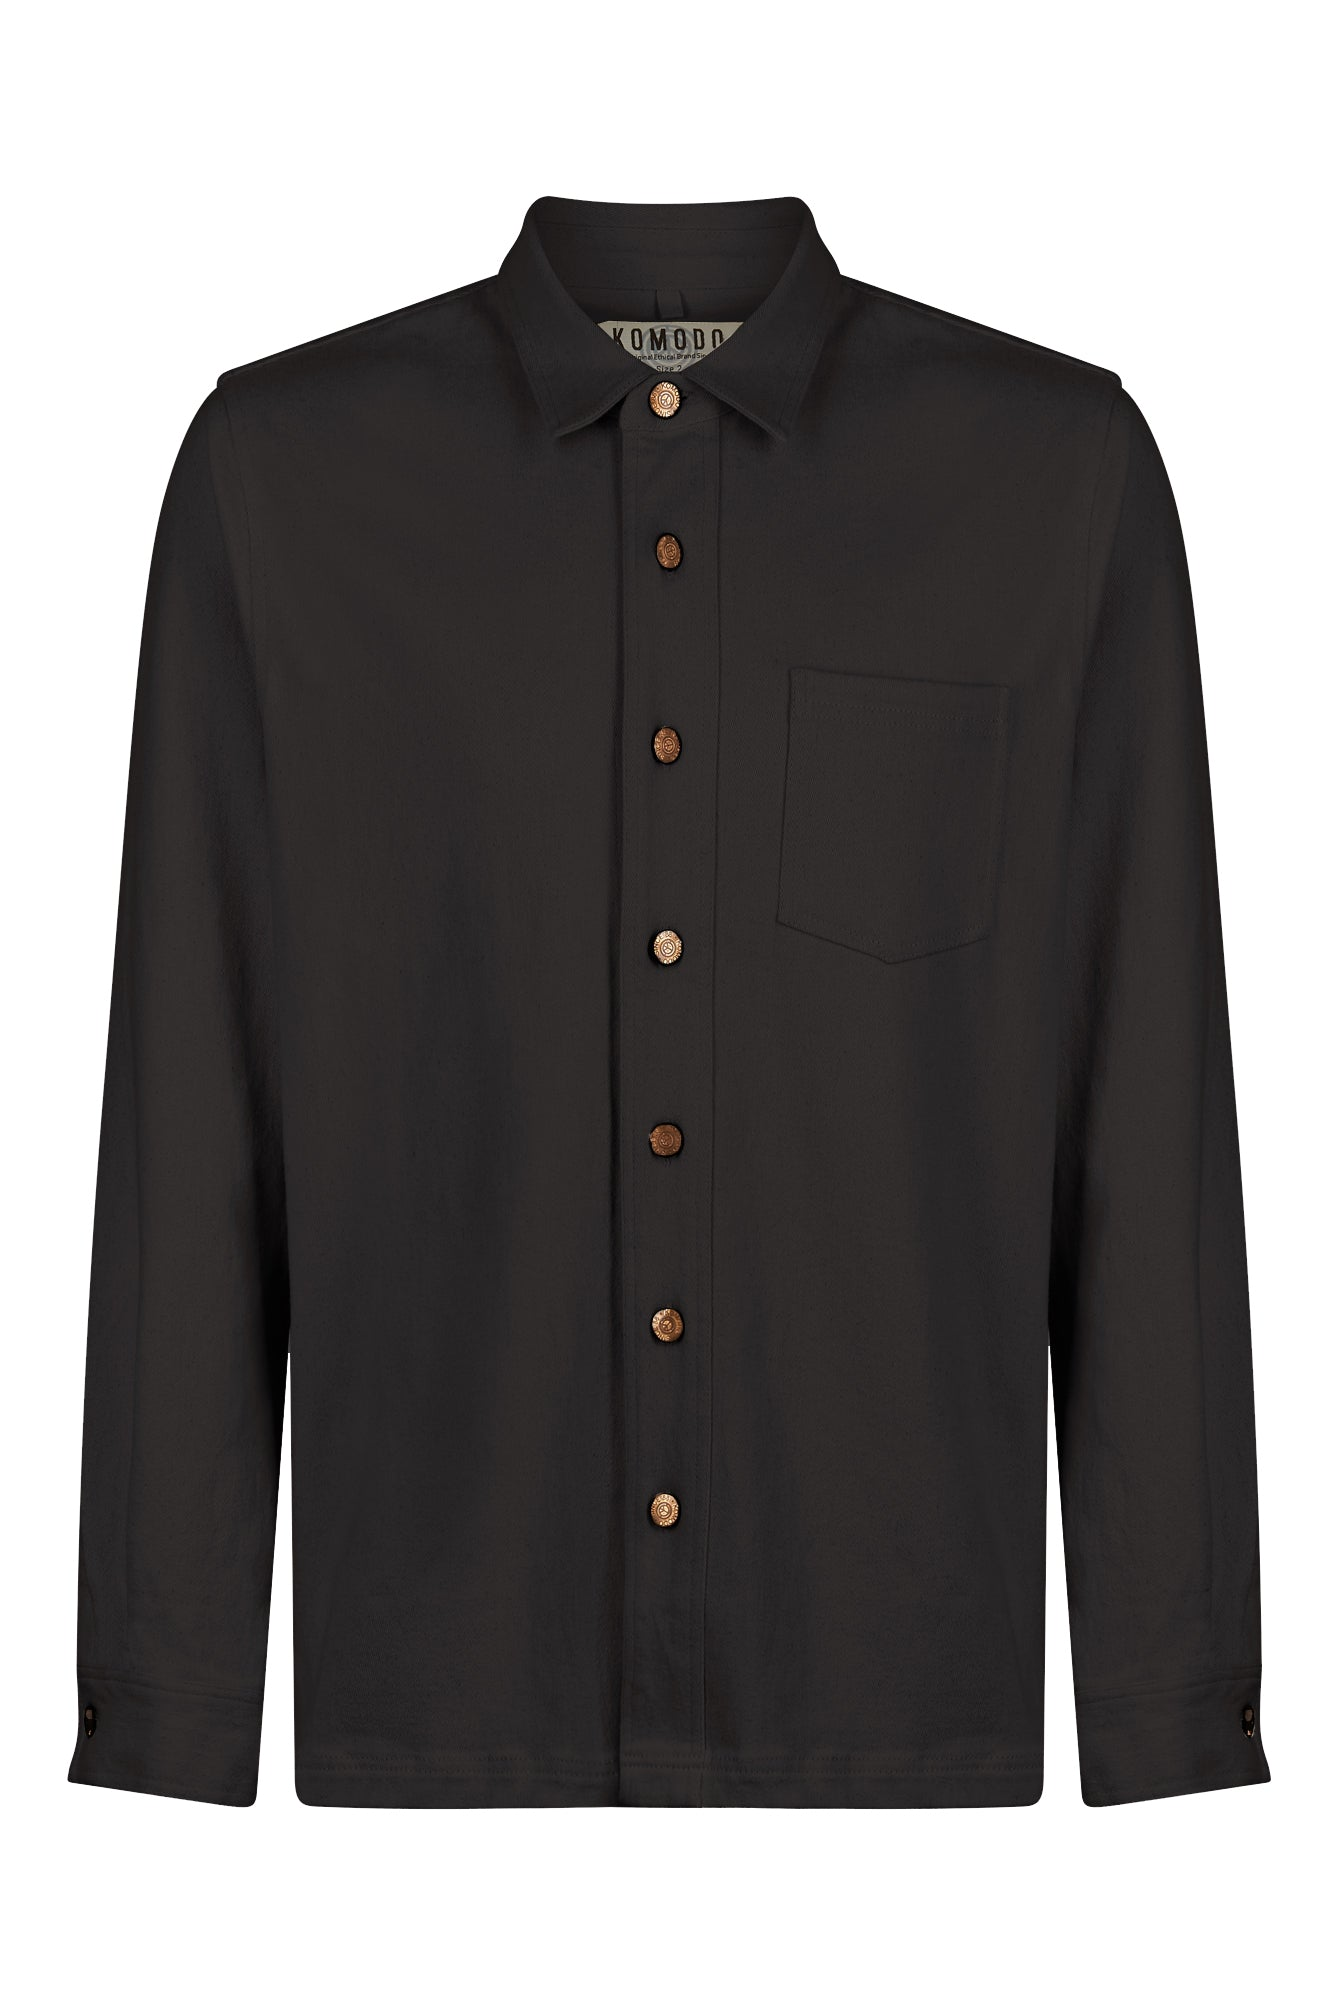 JEAN Organic Cotton Shirt Coal